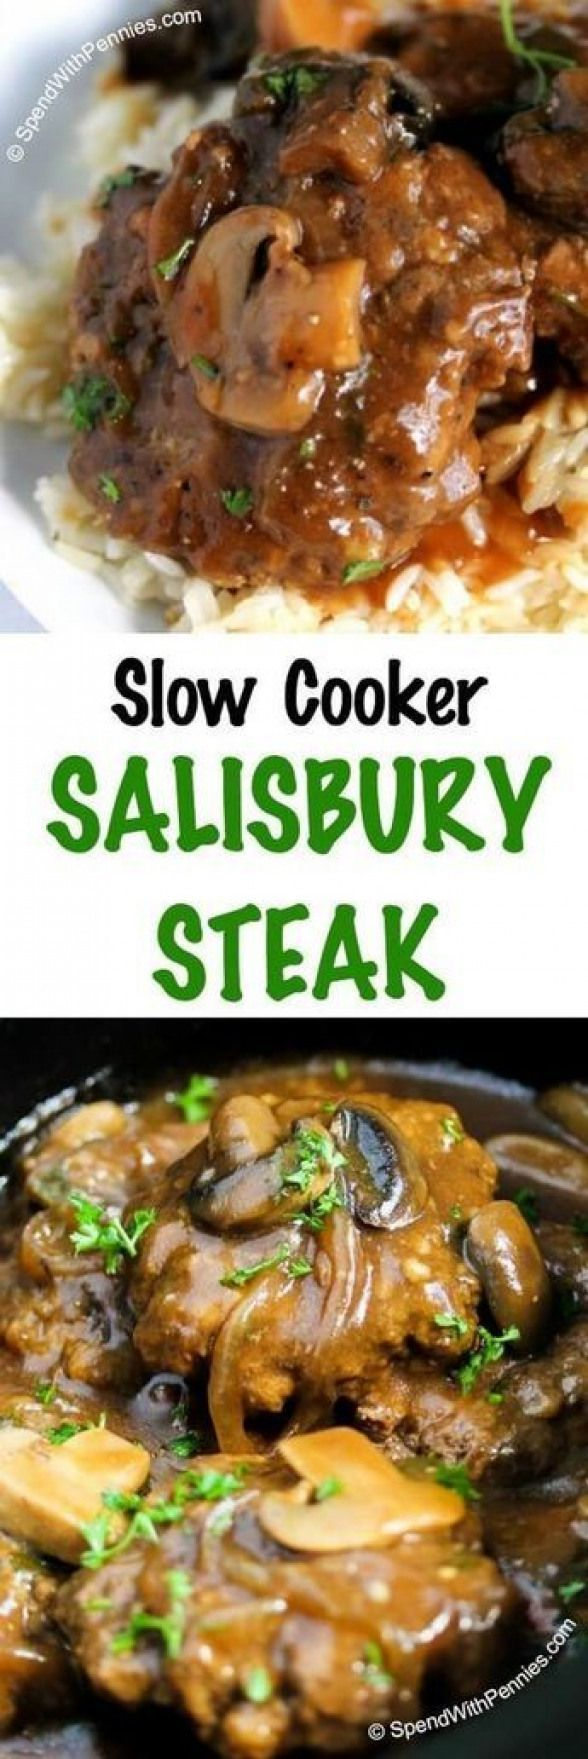 Cooker Salisbury Steak is one of our favorite comfort foods. Tender beef patties simmered in rich brown gravy with mushrooms and onions. This is perfect served over mashed potatoes rice or pasta!